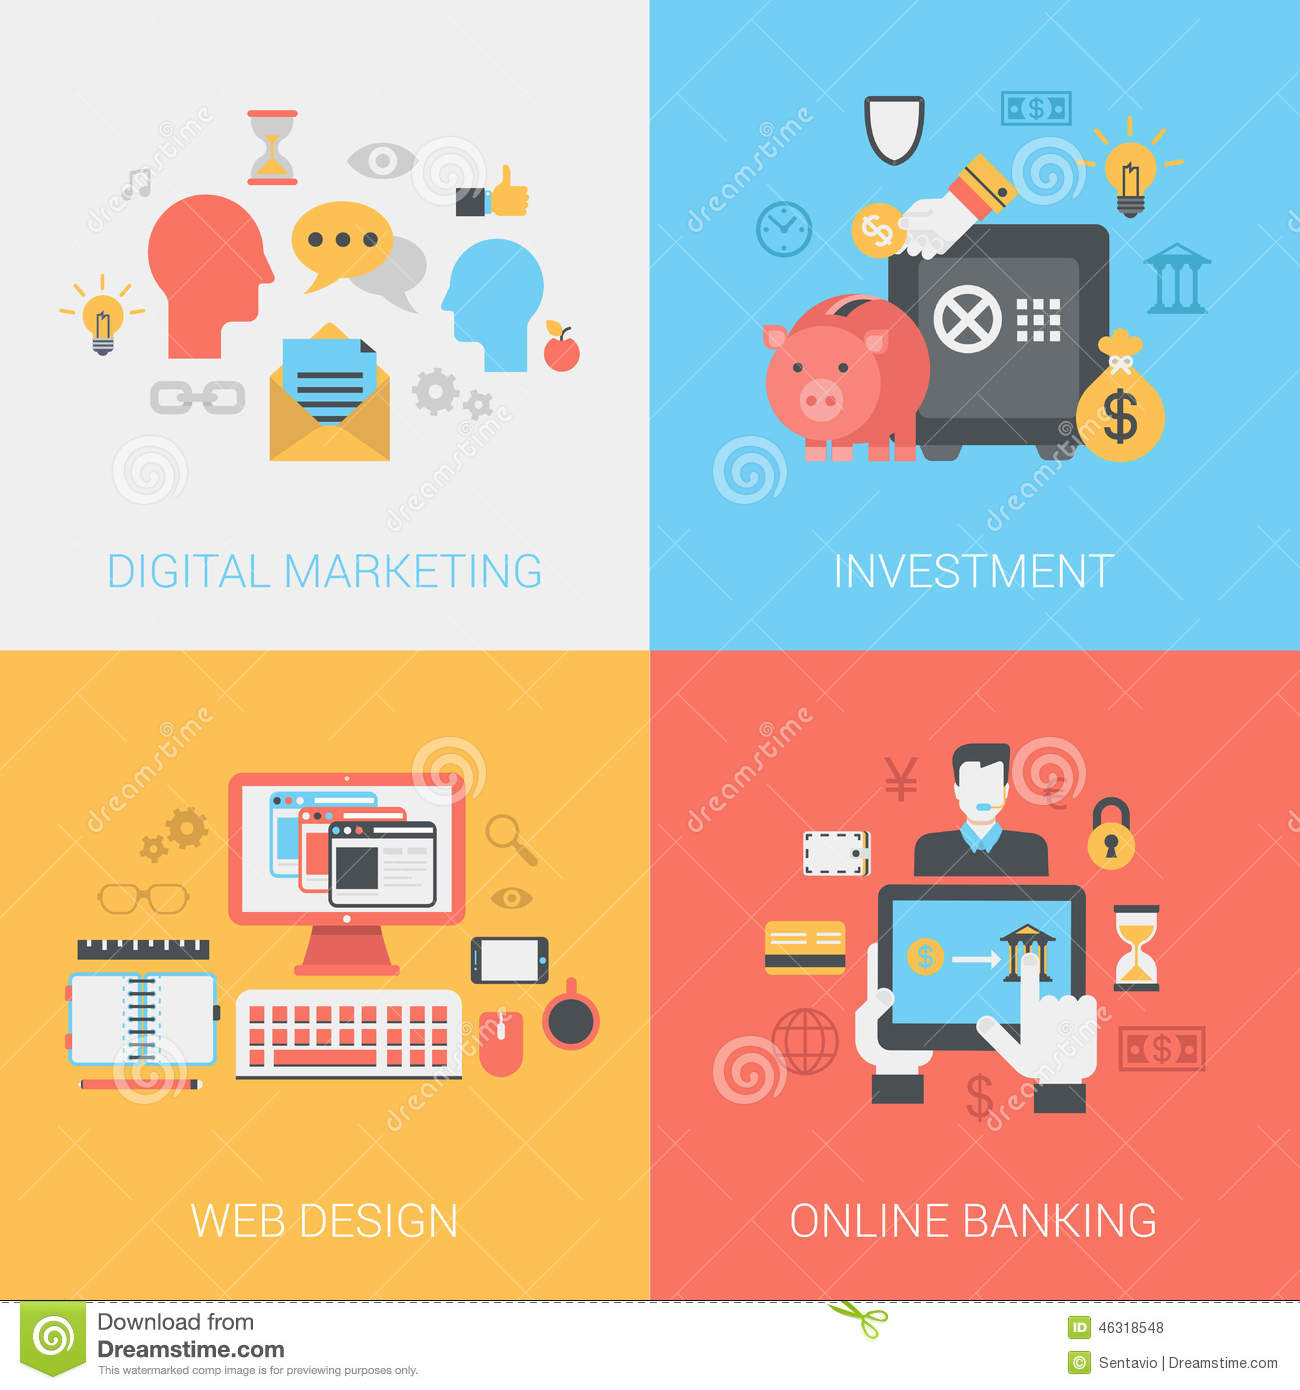 digital marketing investments web design online banking